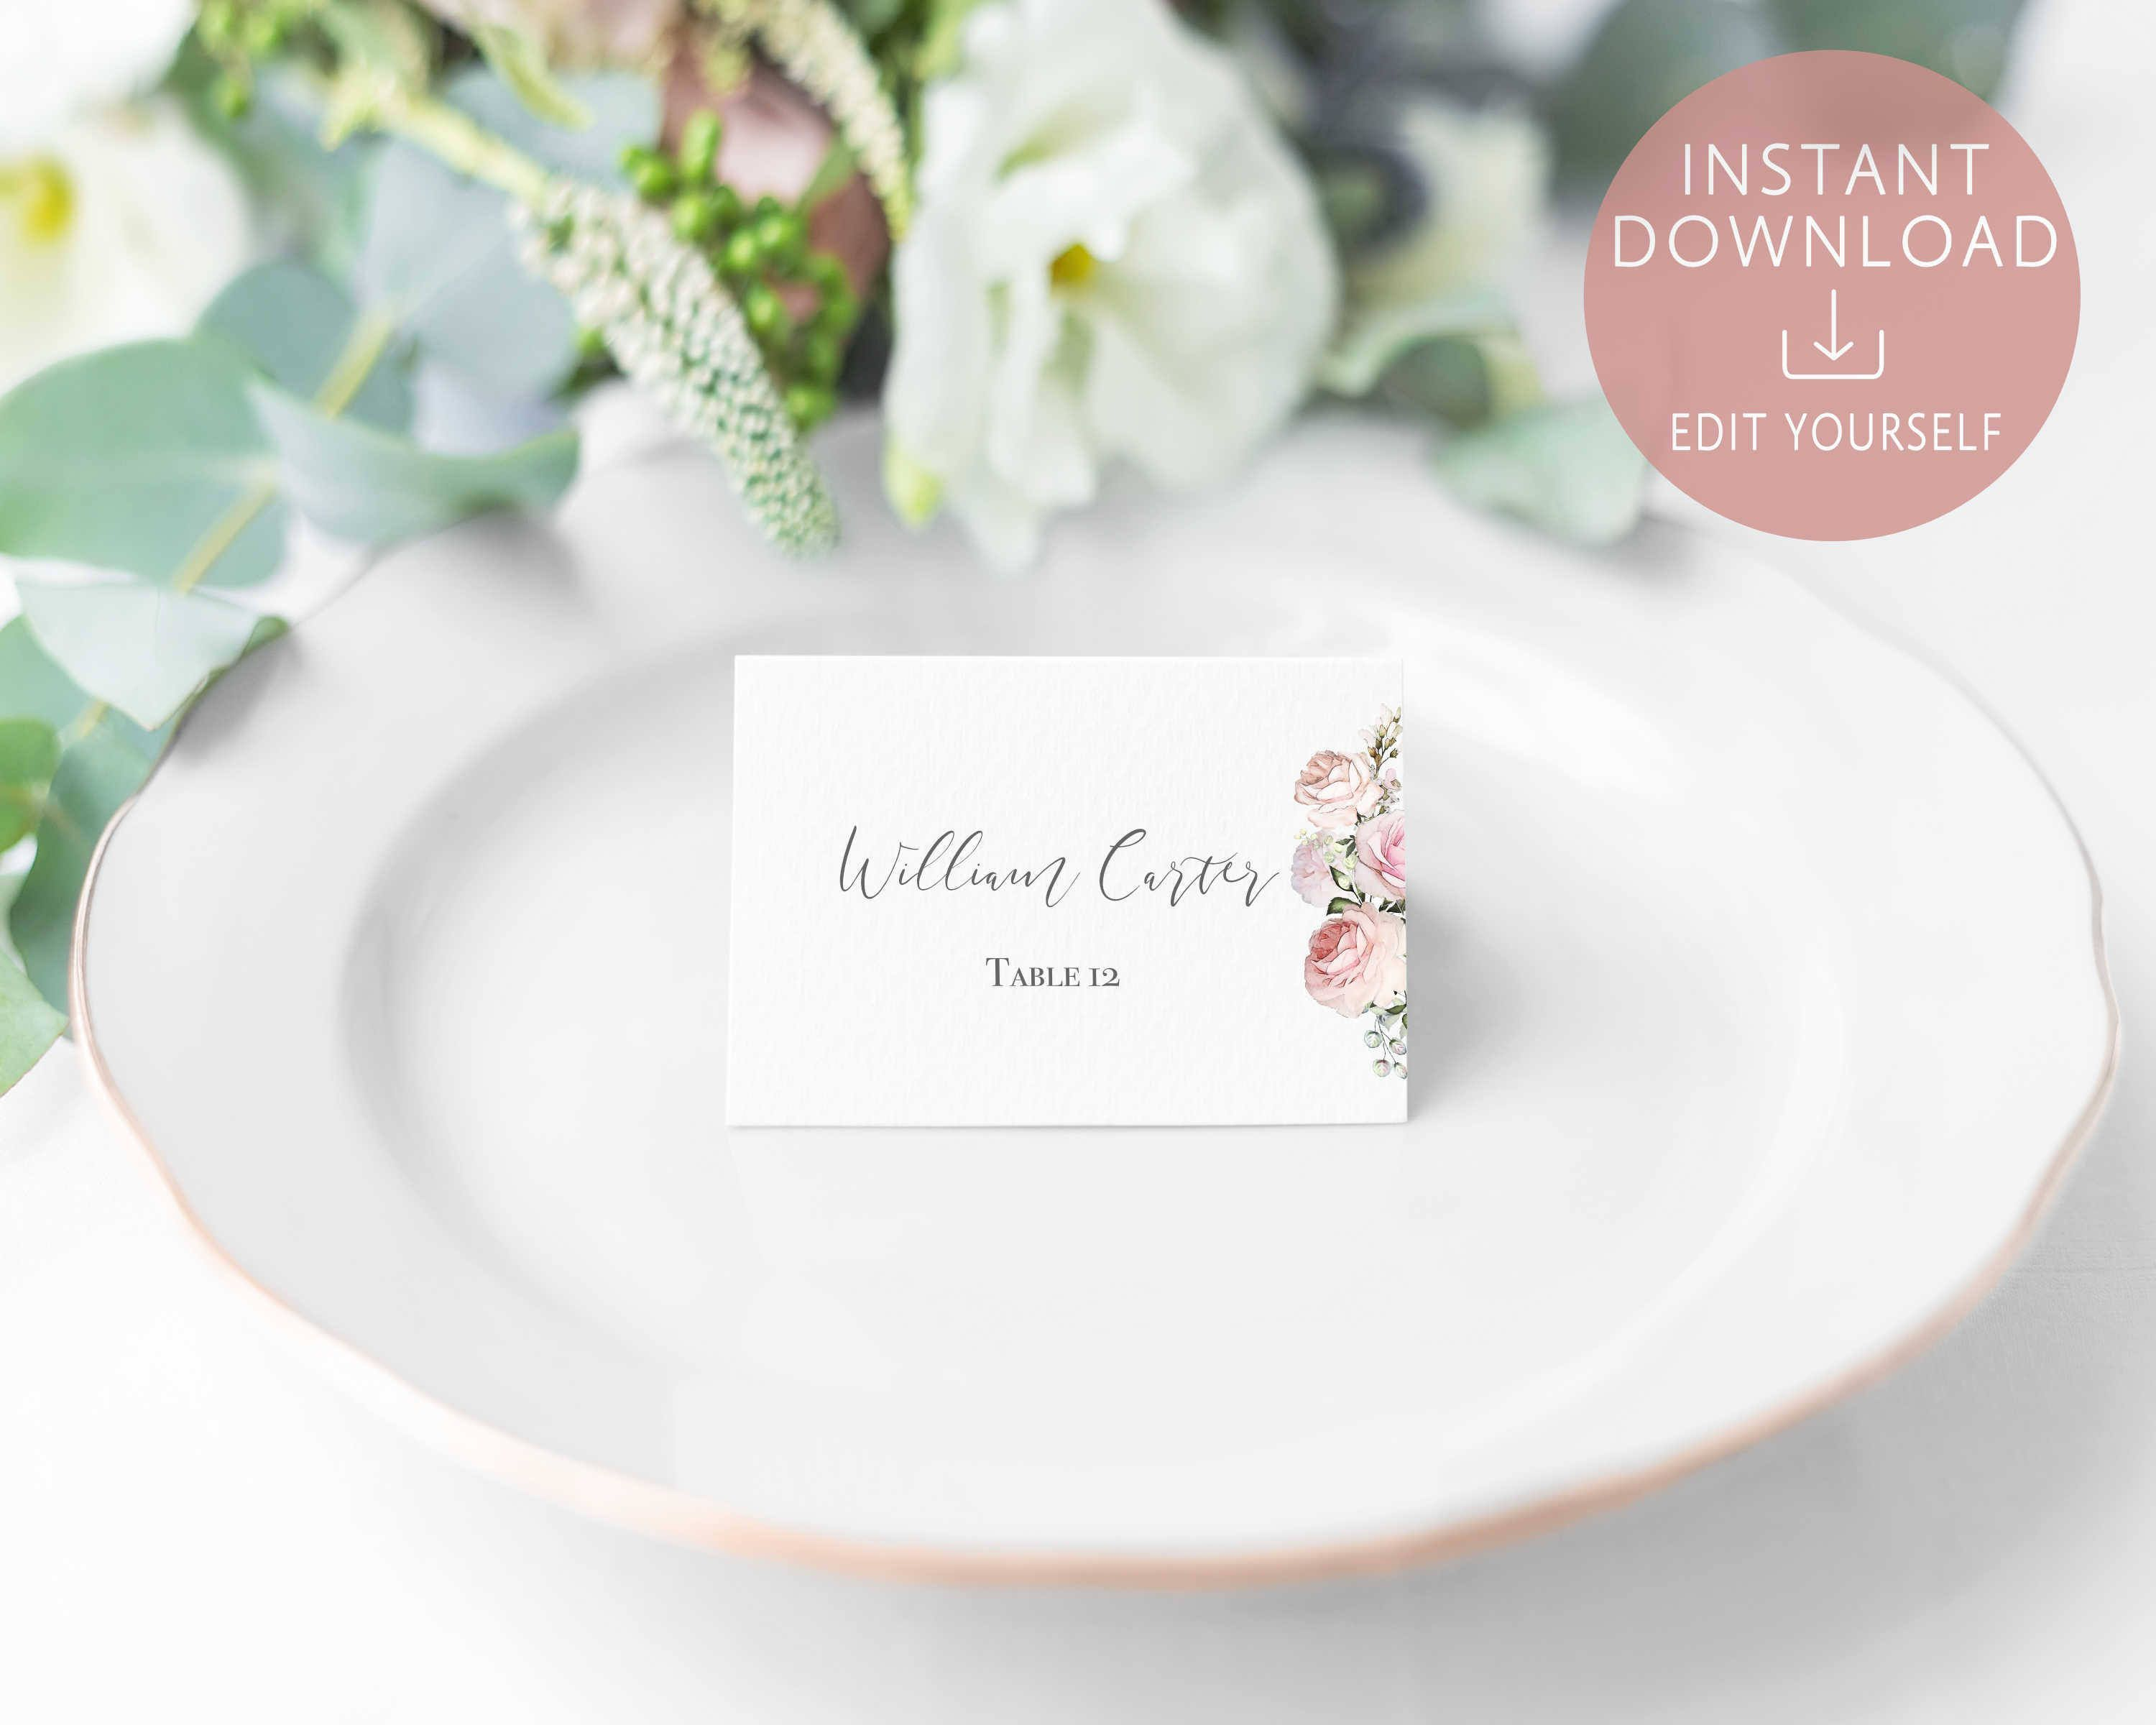 004 Magnificent Name Place Card Template For Wedding Highest Quality  Free WordFull